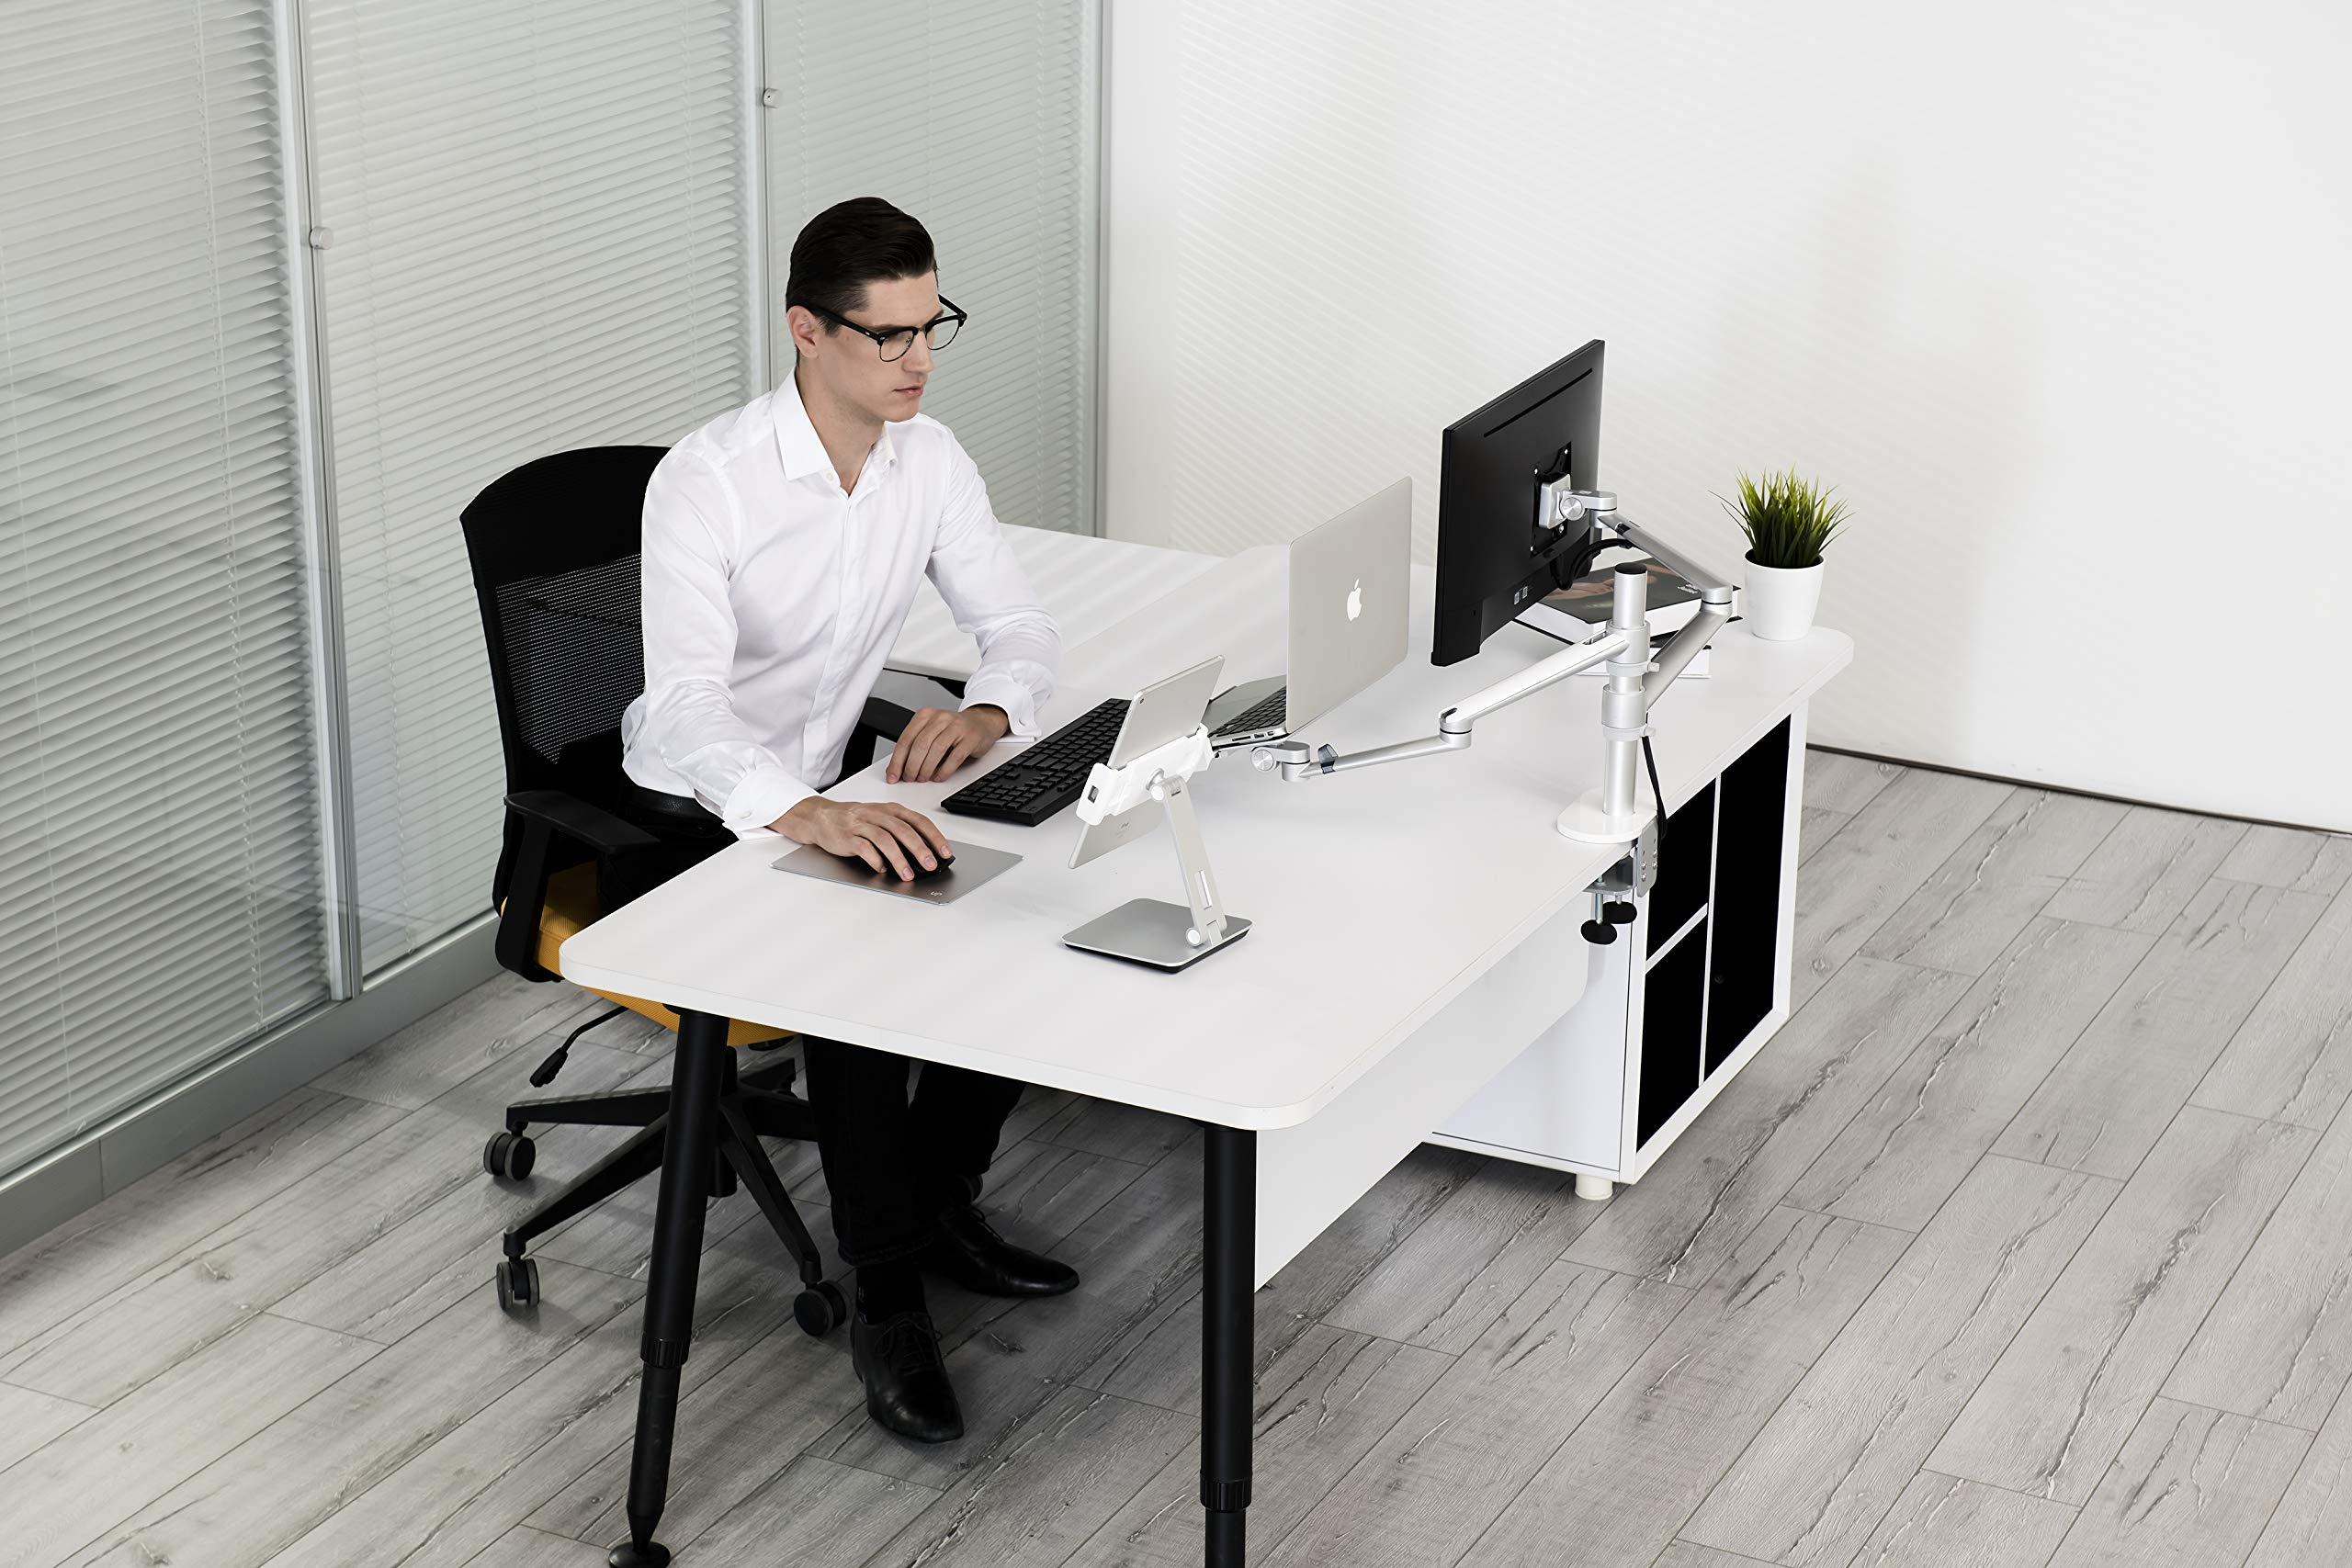 MagicHold 3 in 1 360º Rotating office/desk stand for Laptop(10-15.6'') and any size tablet(7-13'')/IPAD Pro 12.9''/MS Surface Pro by MagicHold® (Image #4)